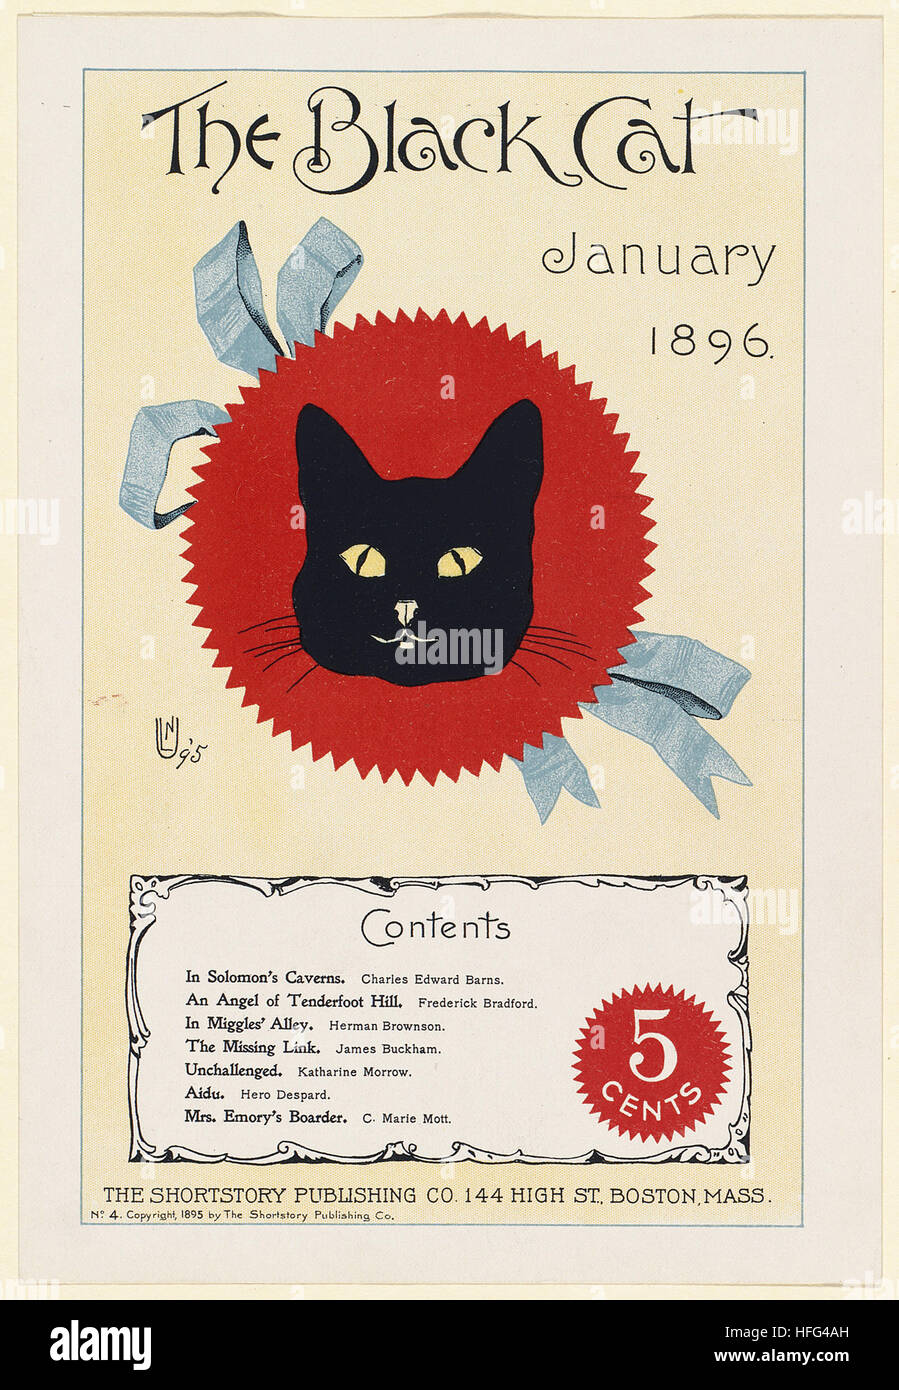 The black cat, January 1896. - Stock Image